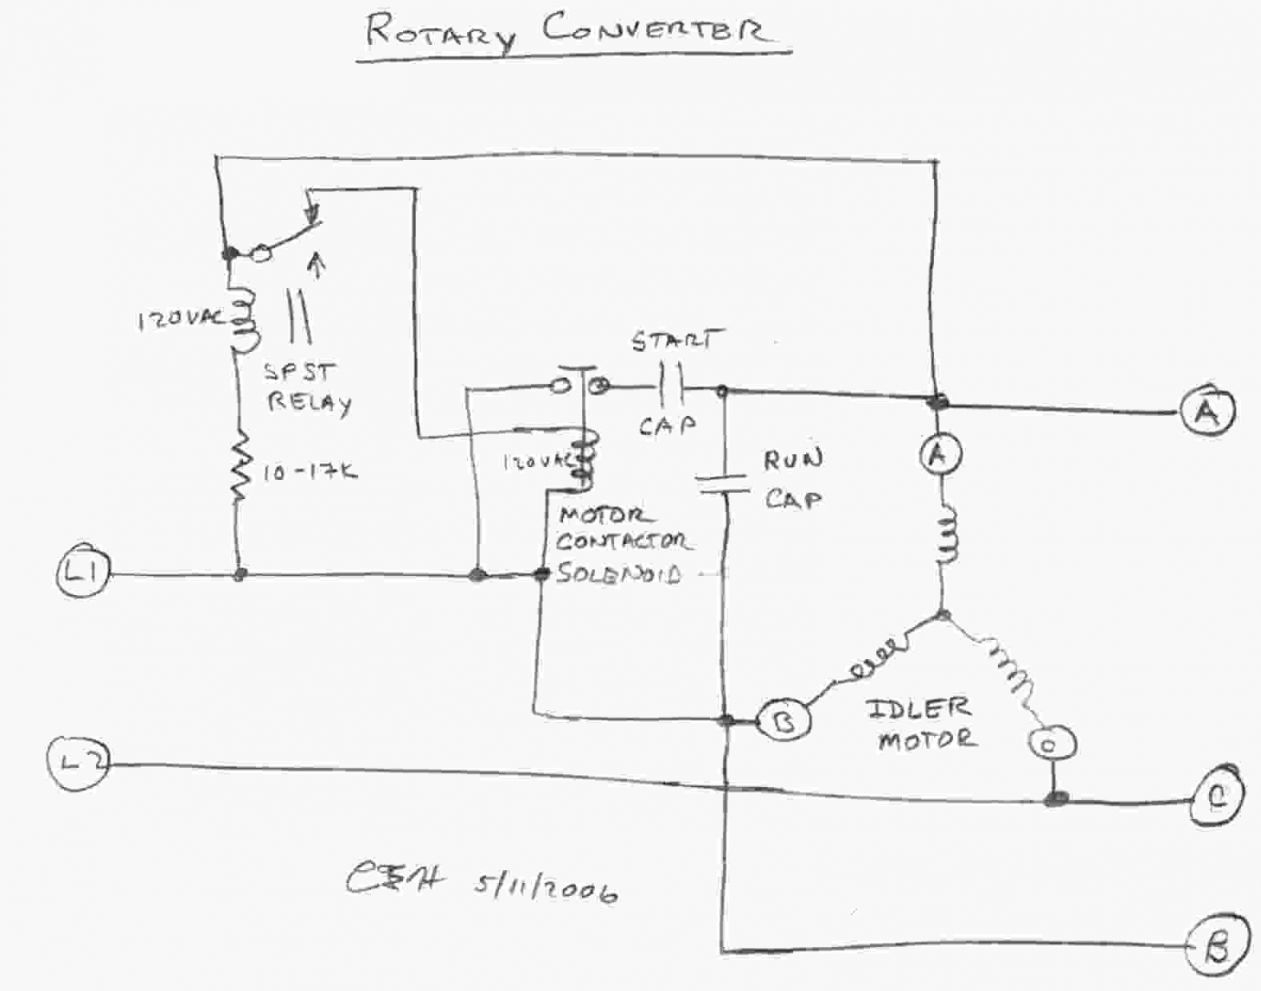 3 Phase Capacitor Diagram Wiring Schemes Start Rotary Converter Download Rh Wholefoodsonabudget Com Bank